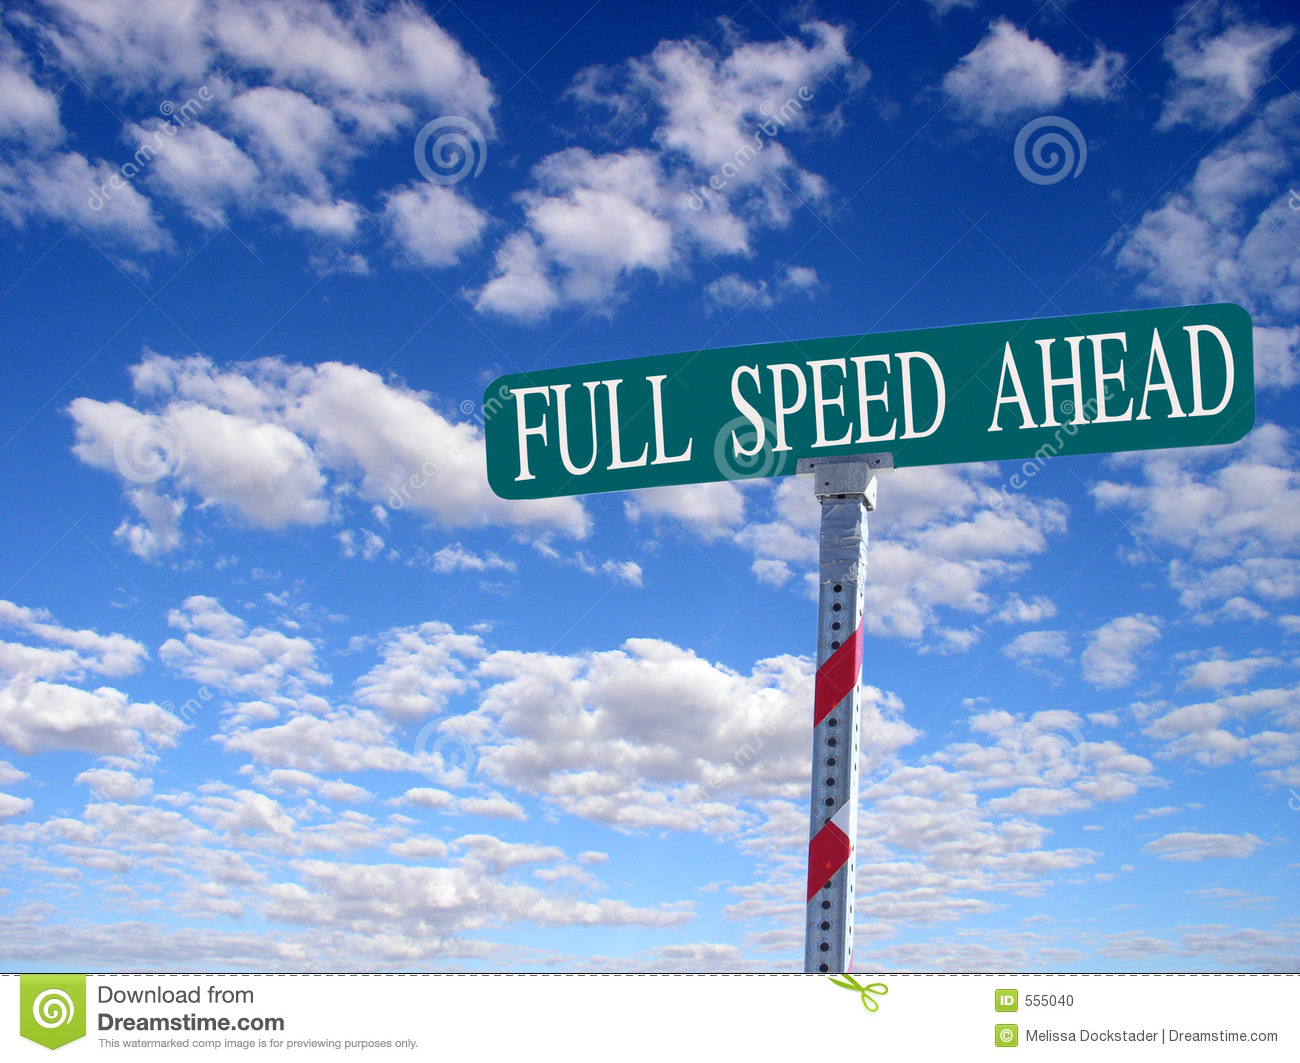 Full Speed Ahead - All In Me